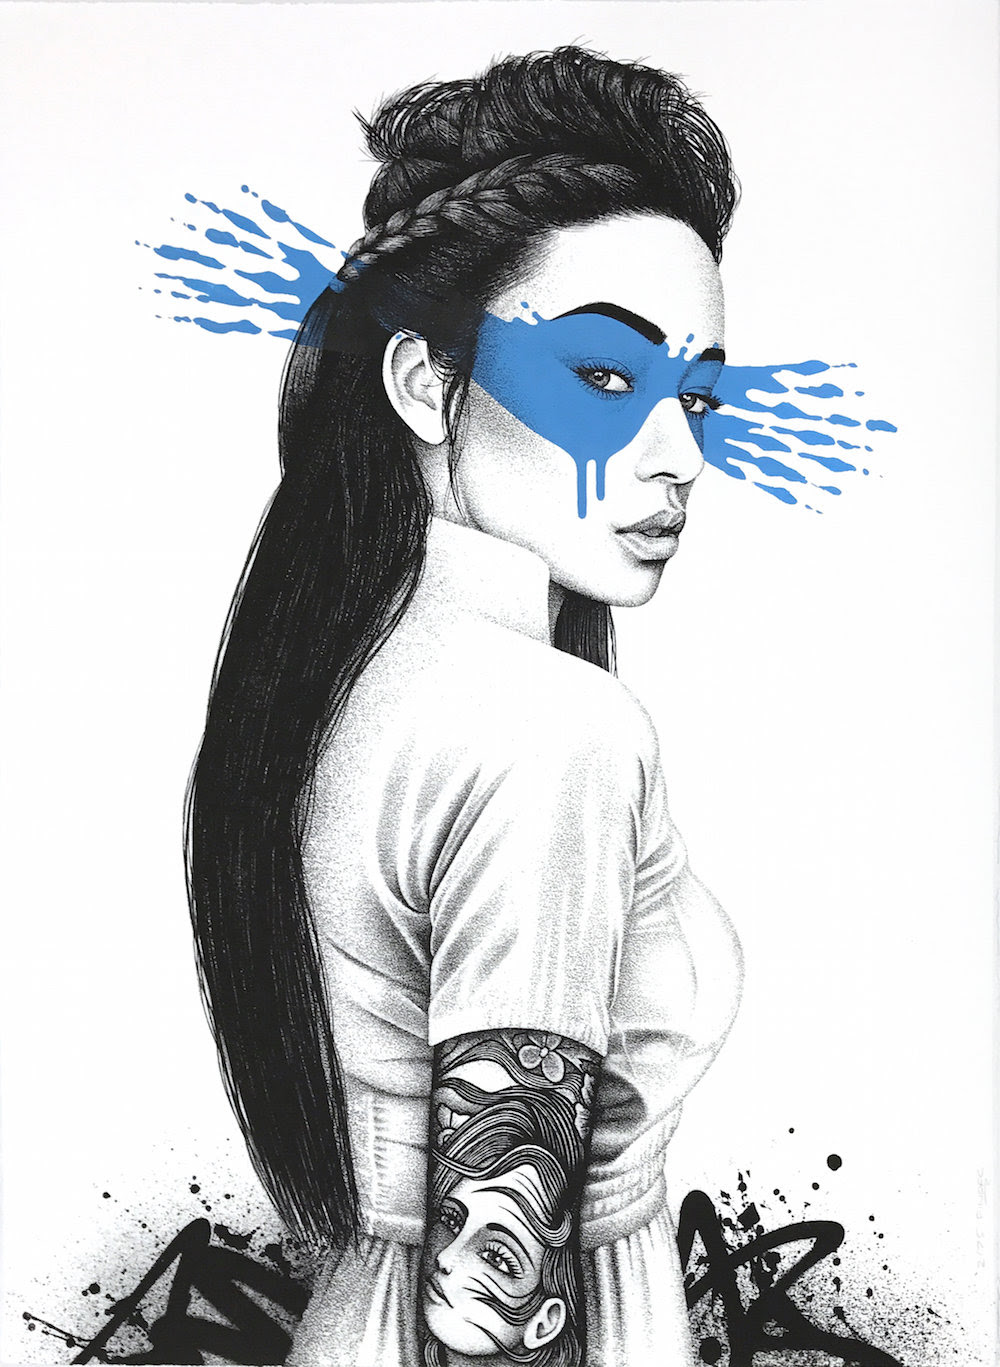 """Shioya"" by FinDAC.  76 x 56cm Screenprint, hand-finished.  Ed of 75 S/N.  200€ ($217)"